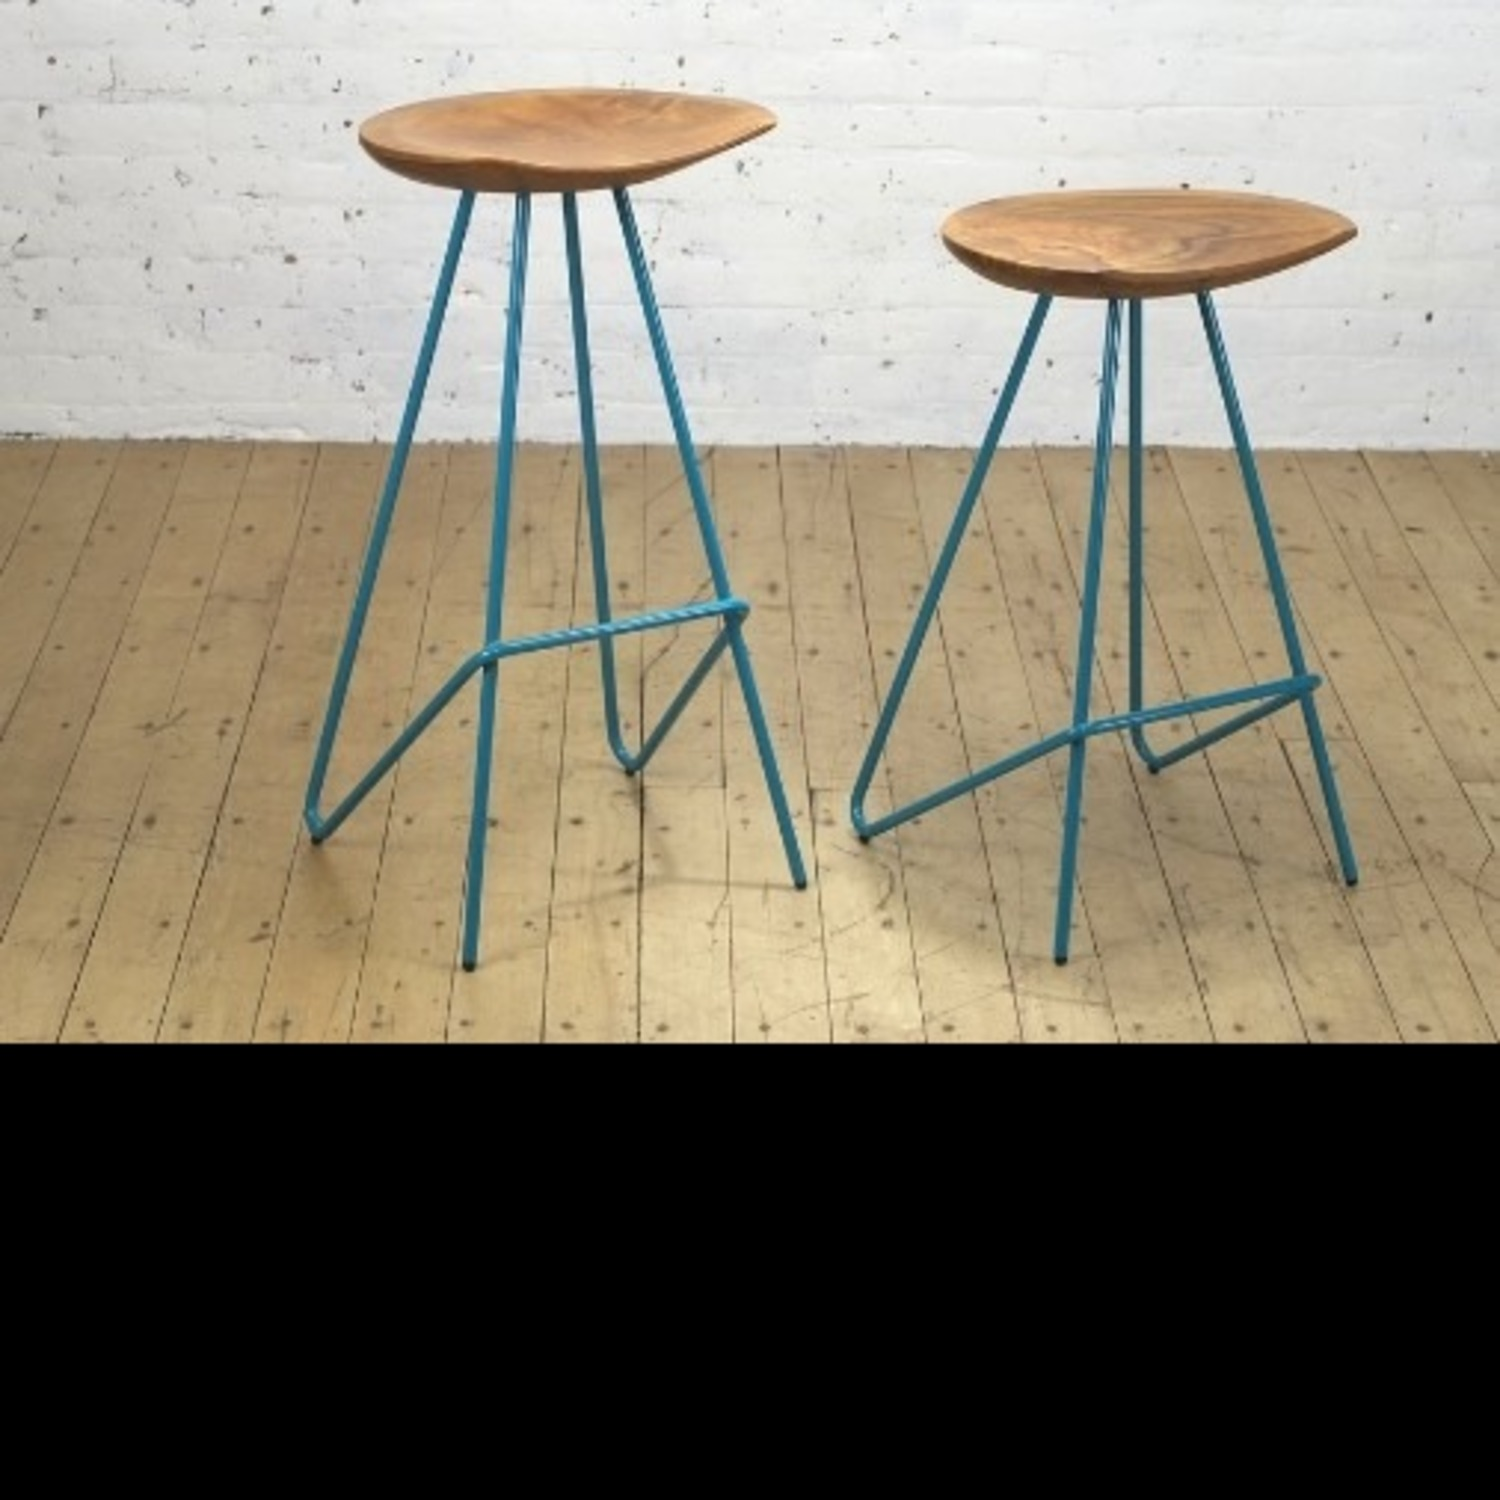 From The Source Perch Counter Stools - Set of 2 - image-13